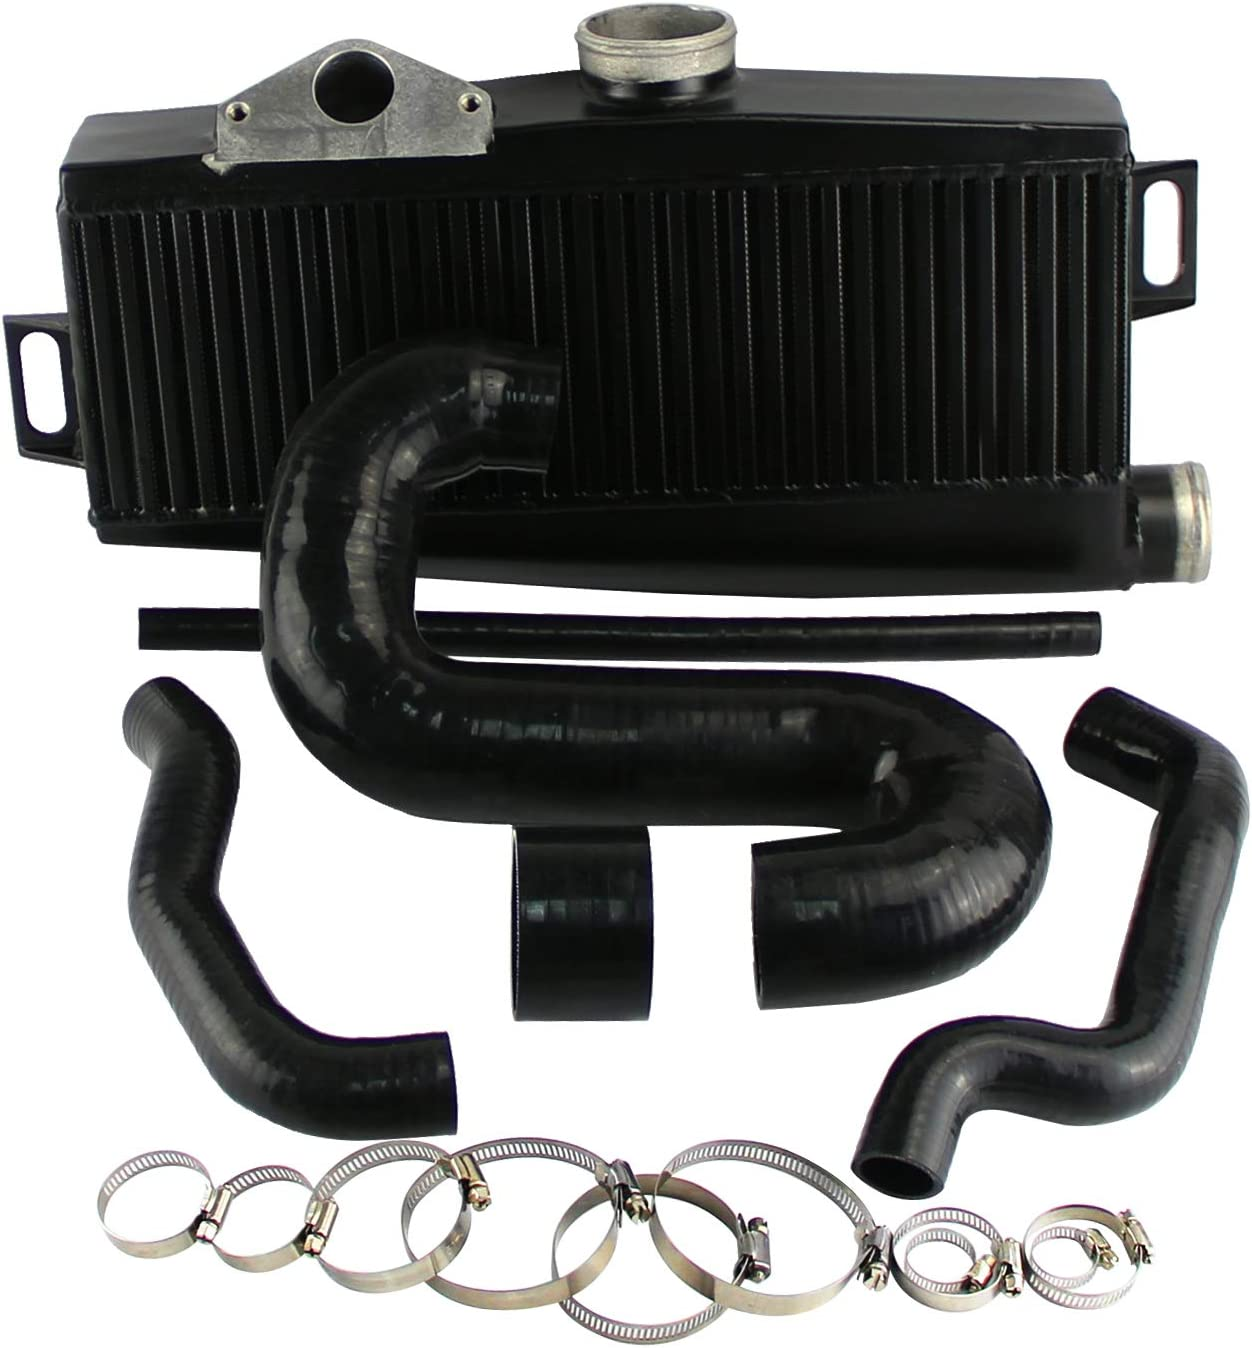 New Genuine Top-Mount Intercooler Kit Clearance SALE Limited time w Silicone St for Wrx Hoses Subaru